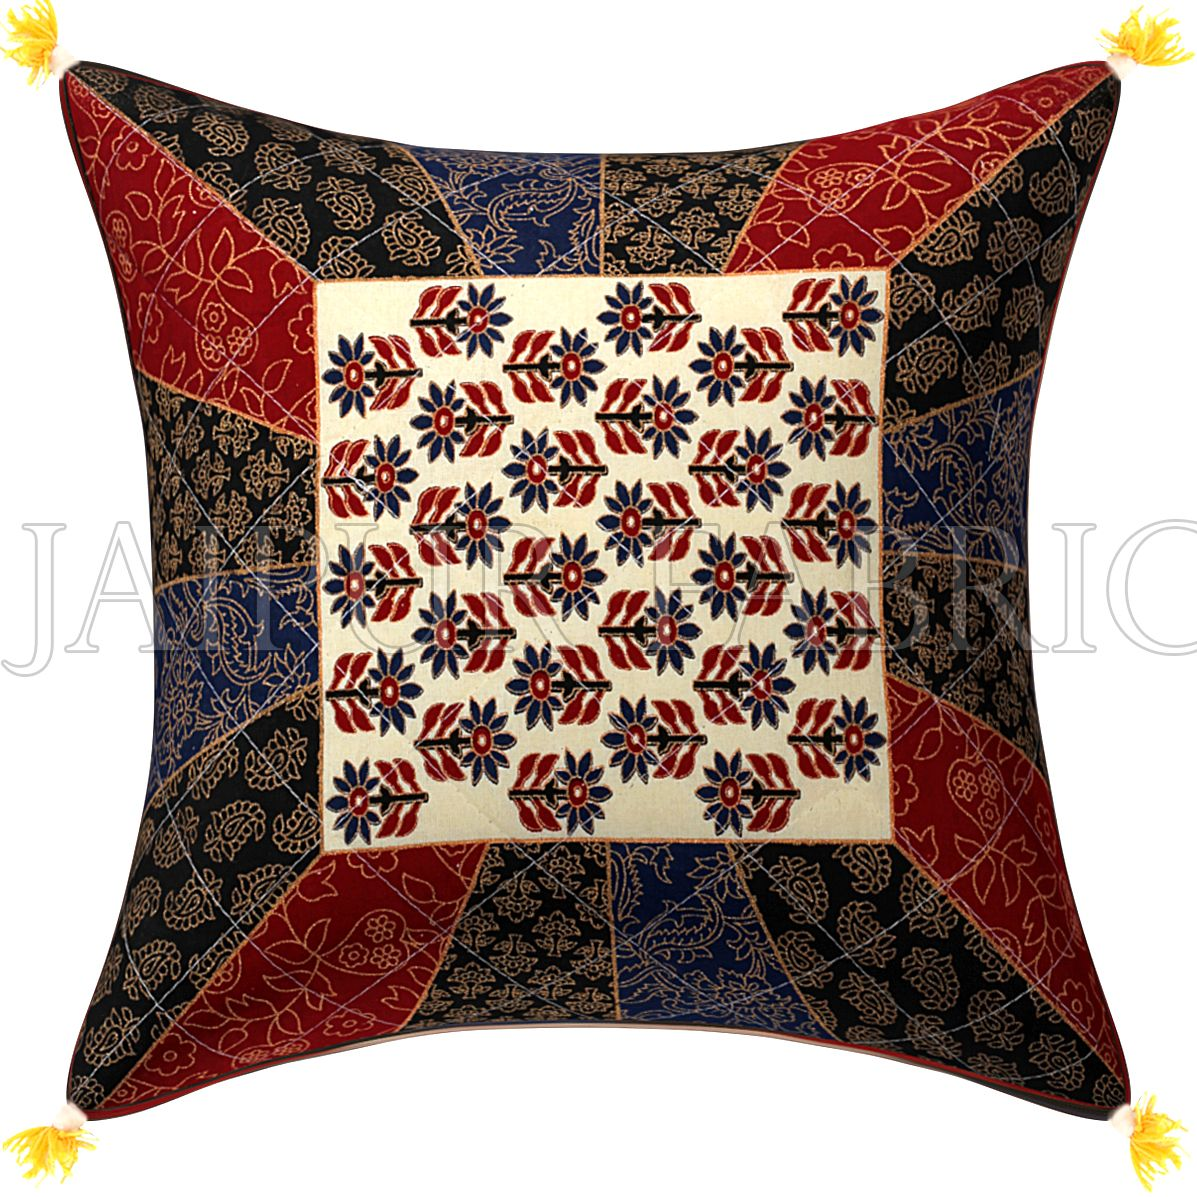 Golden Print Multi Colour Central Square Floral Print Cushion Cover